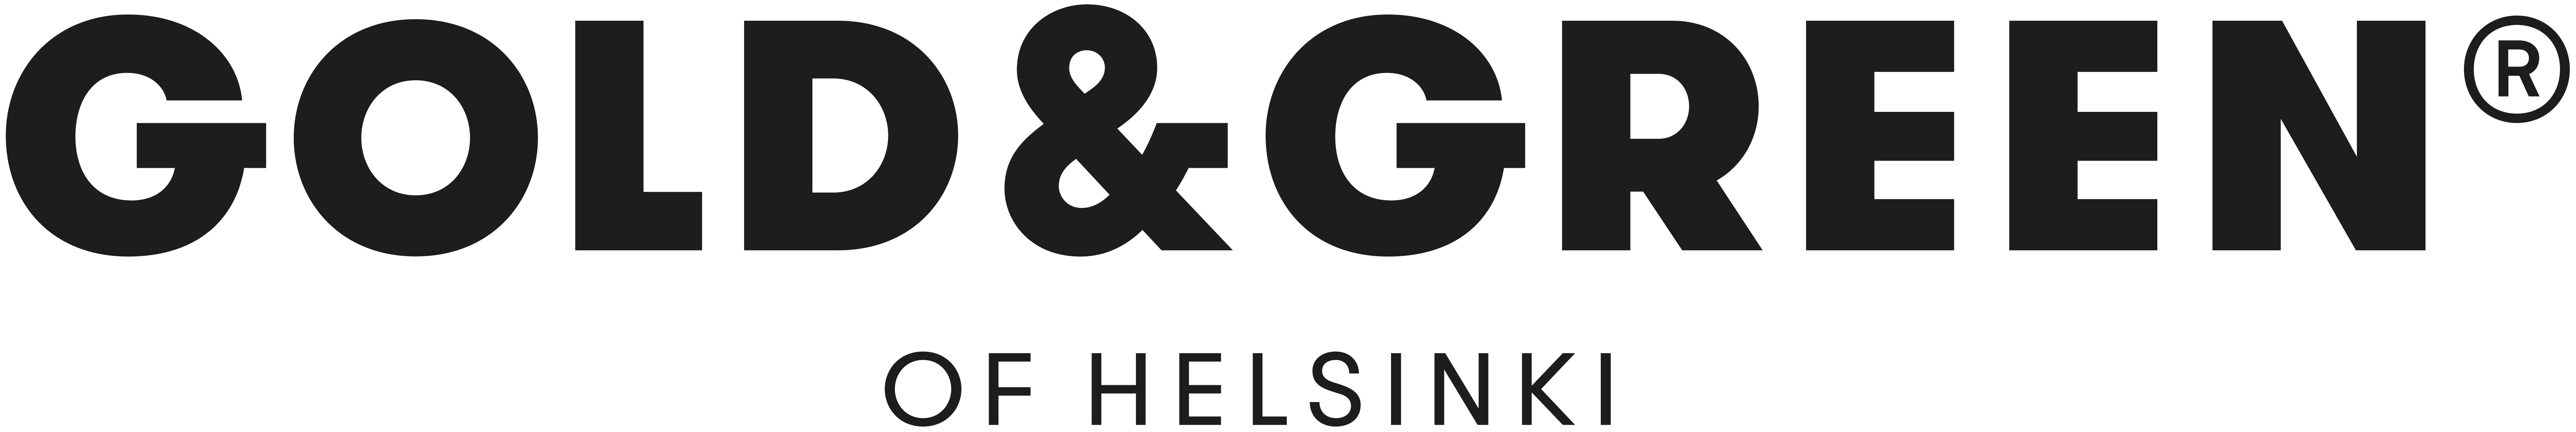 Gold and Green logo